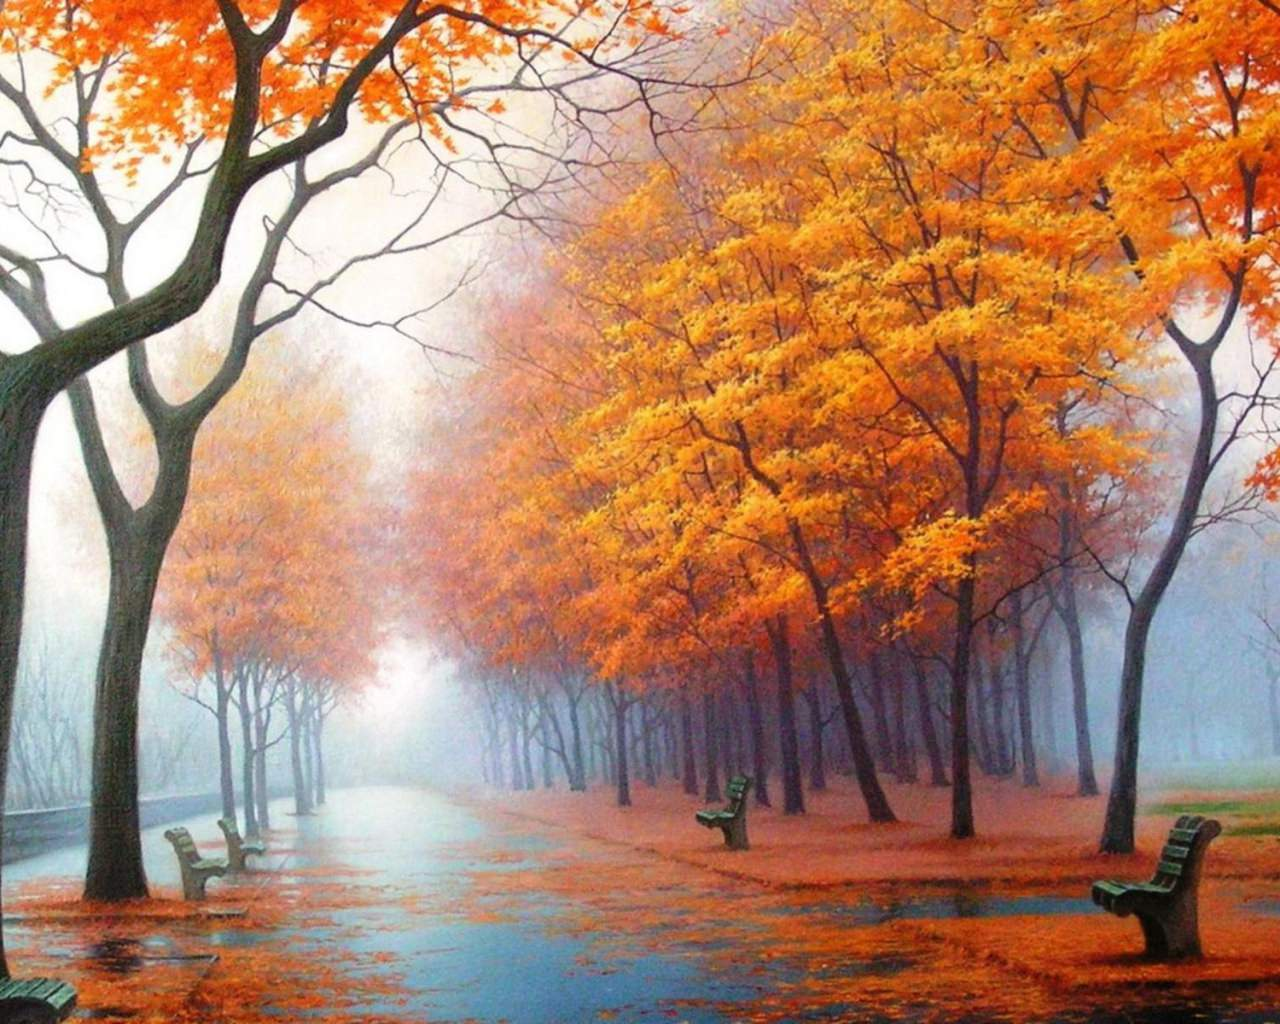 Fall Colors Wallpaper Background 21 Autumn Wallpapers Backgrounds Images Freecreatives